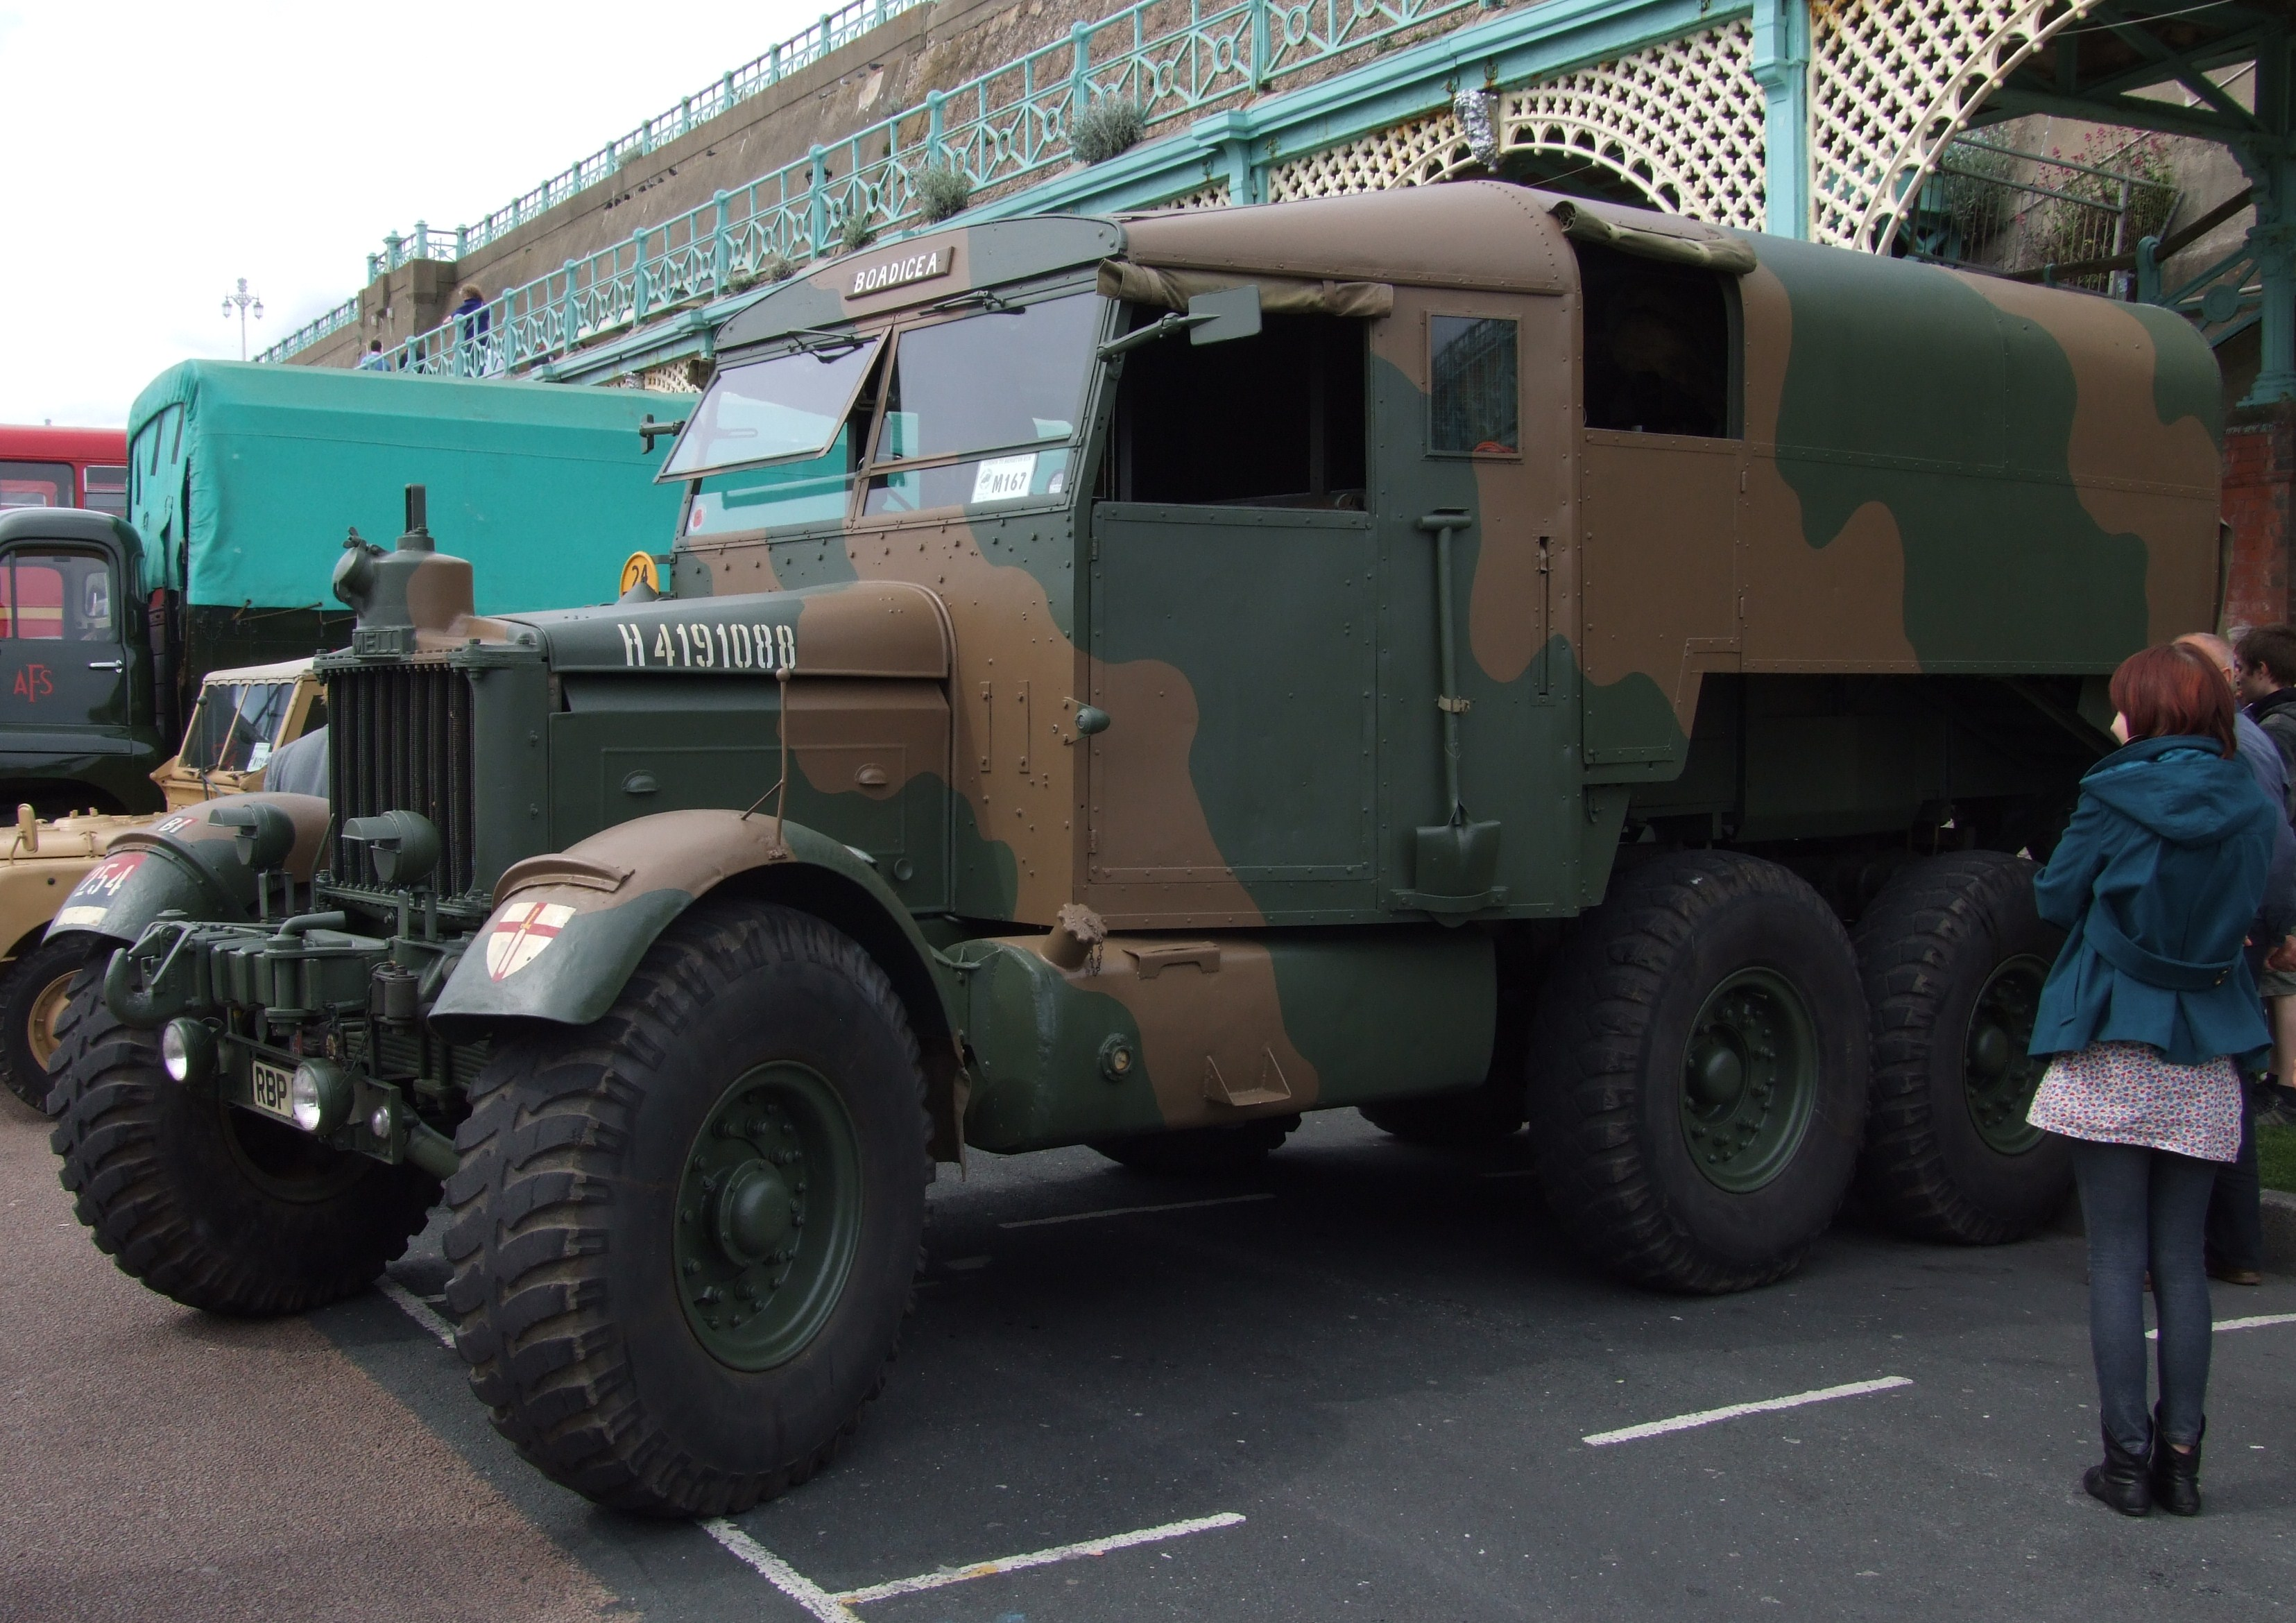 Scammell - Wikiwand